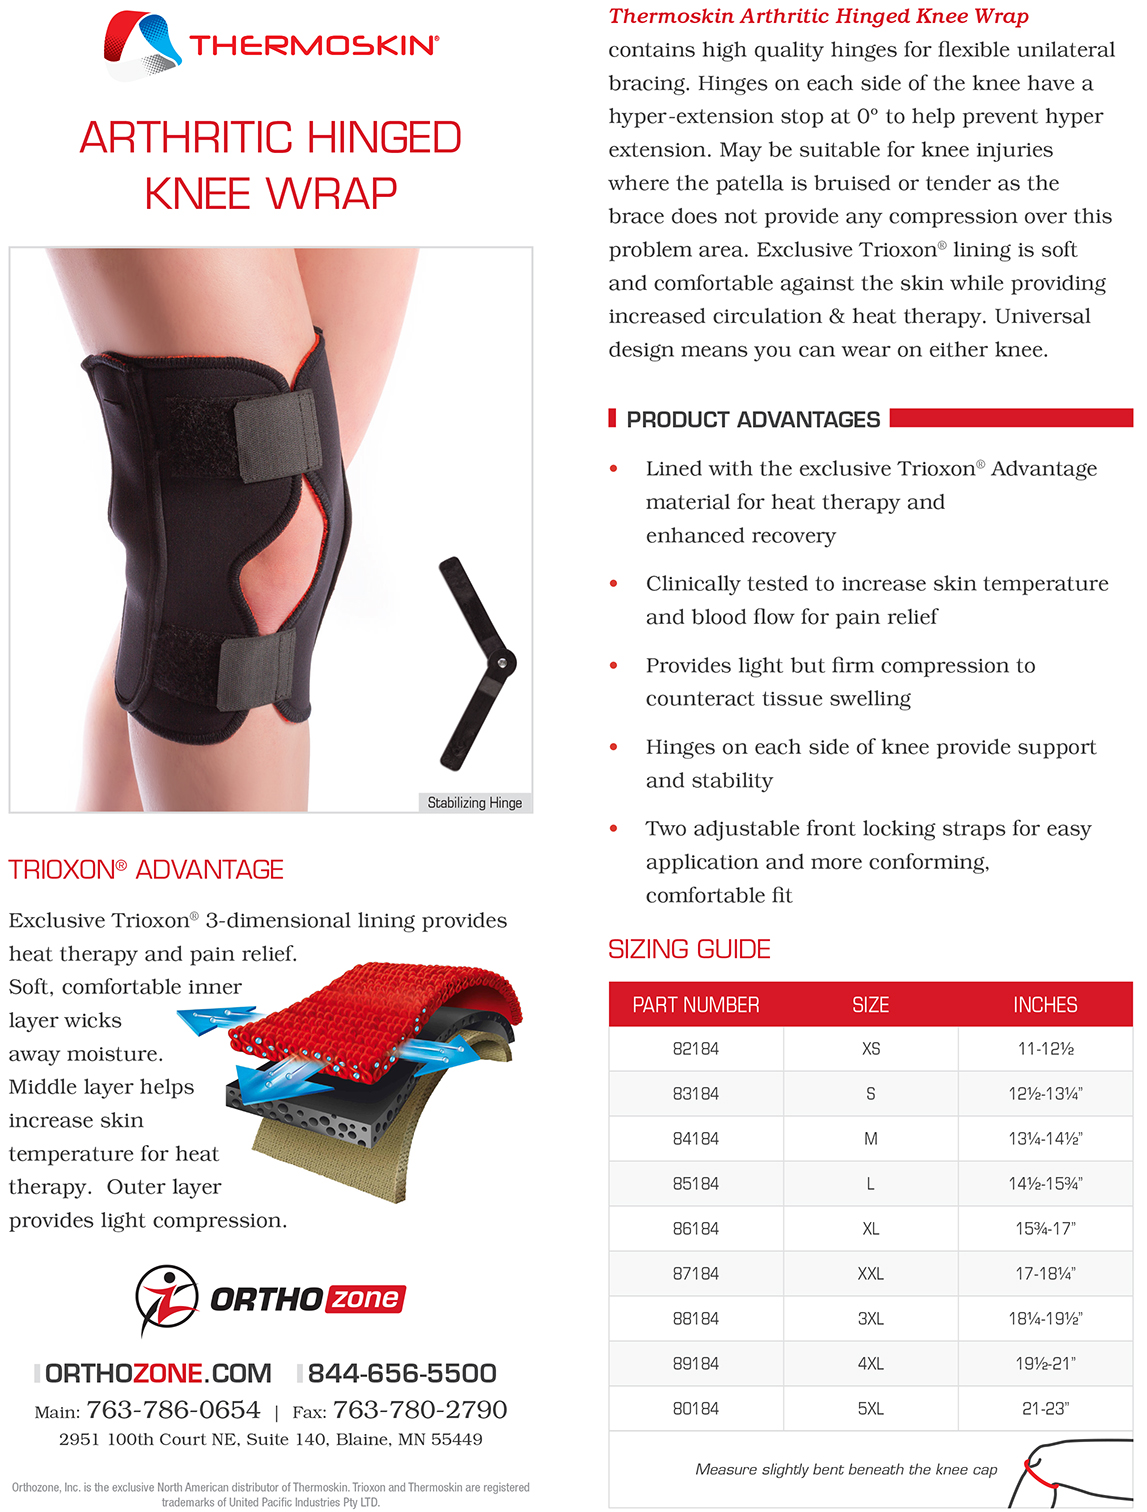 Thermoskin Arthritic Hinged Knee Wrap, Black. $59.95-$79.95 alternative product image 2